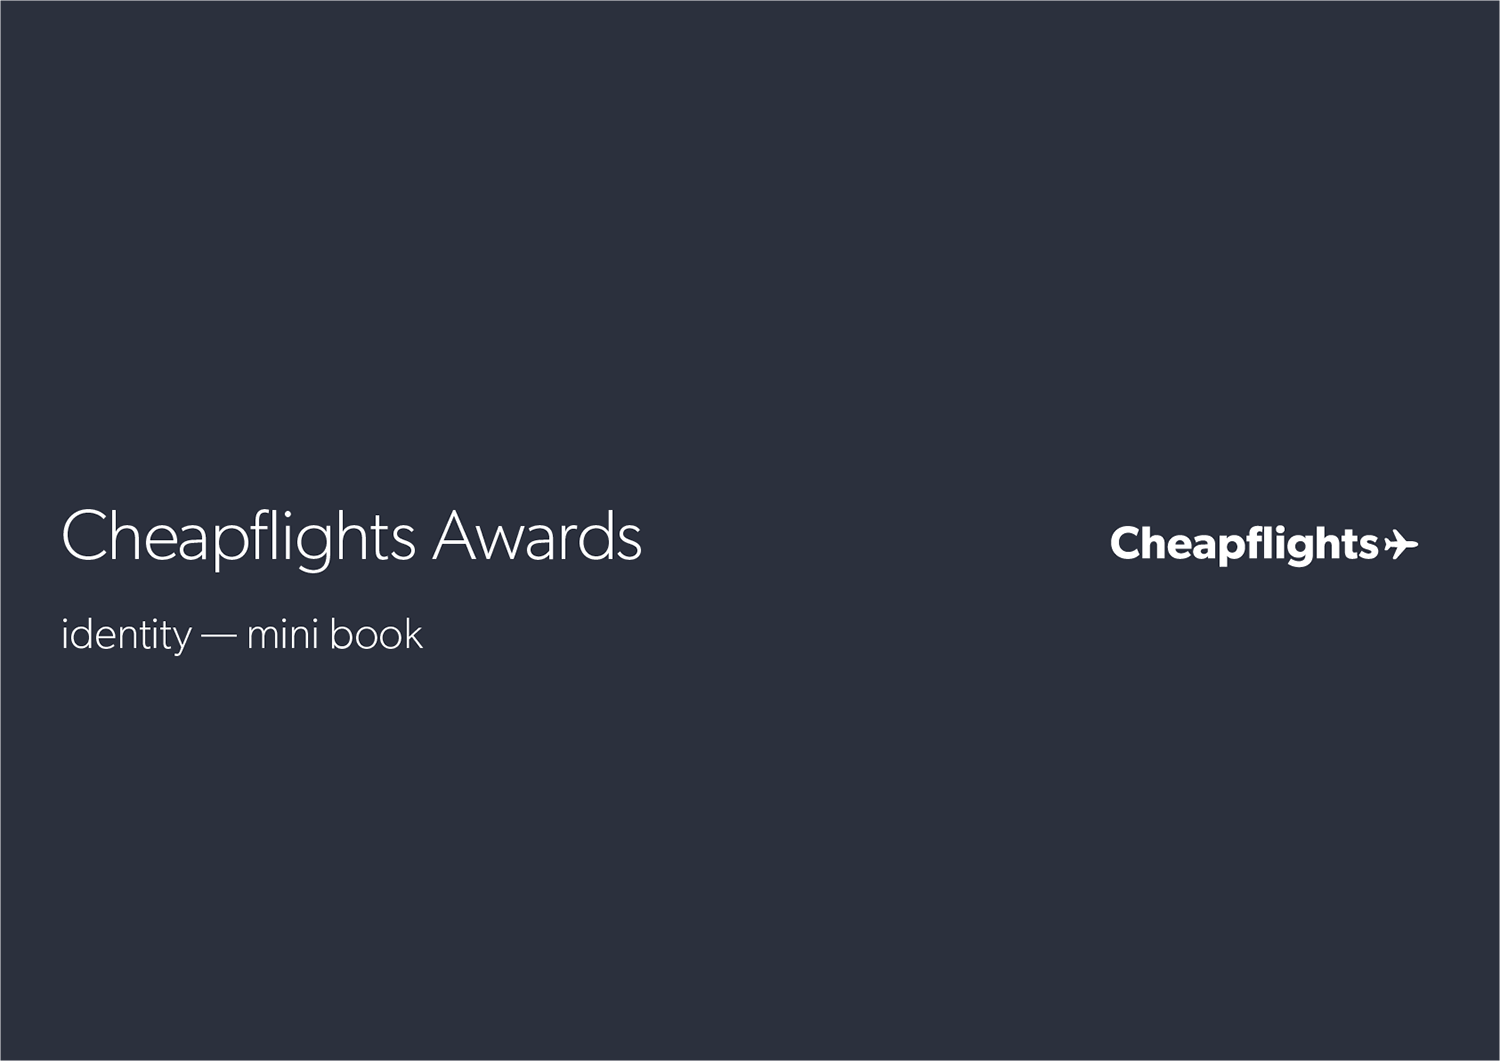 cf-awards-branding-title-page-2@1500px.png